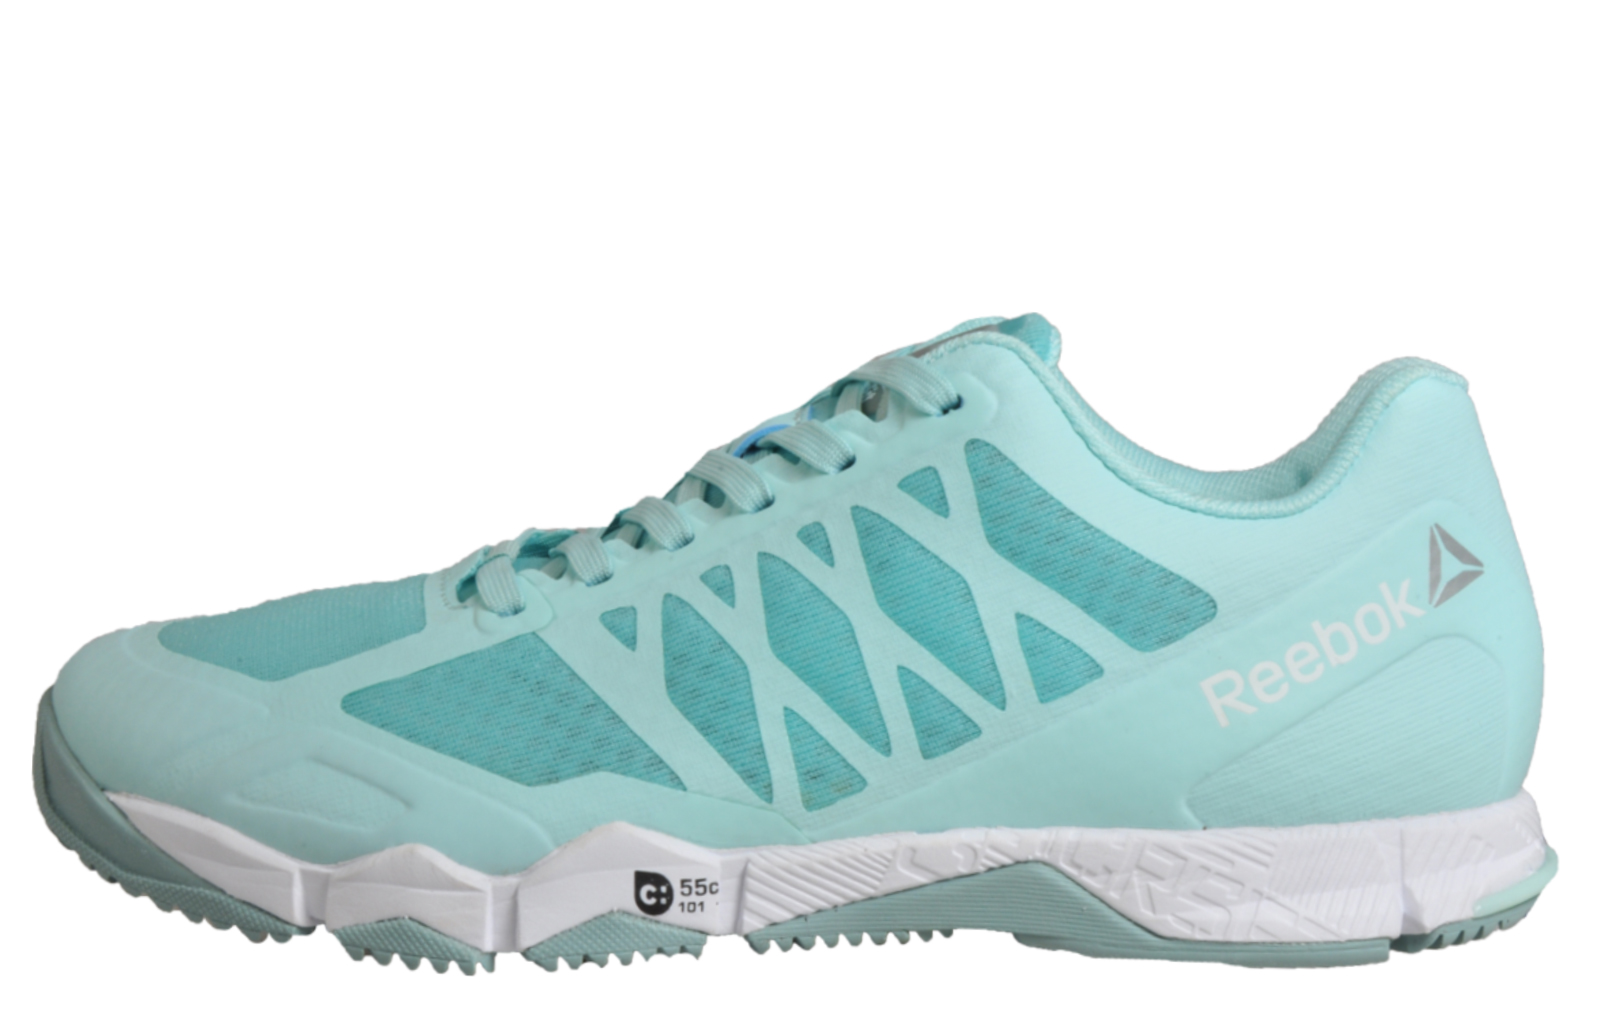 fa1e68ac1c99 Reebok Crossfit Speed TR Women s Fitness Workout Gym Trainers Mint ...